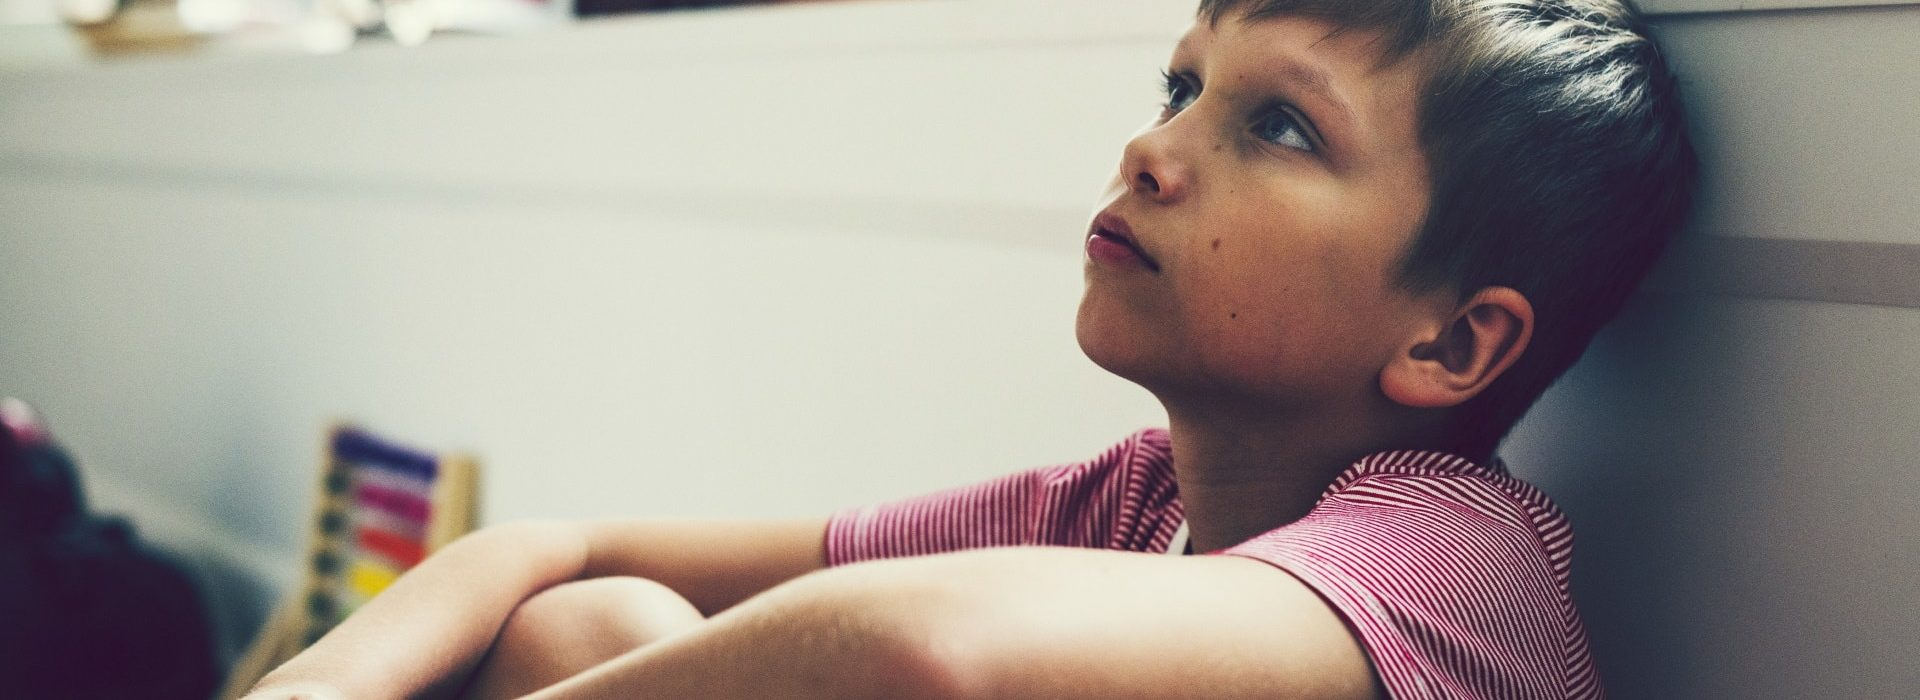 Why We Need to Talk About Child Abuse